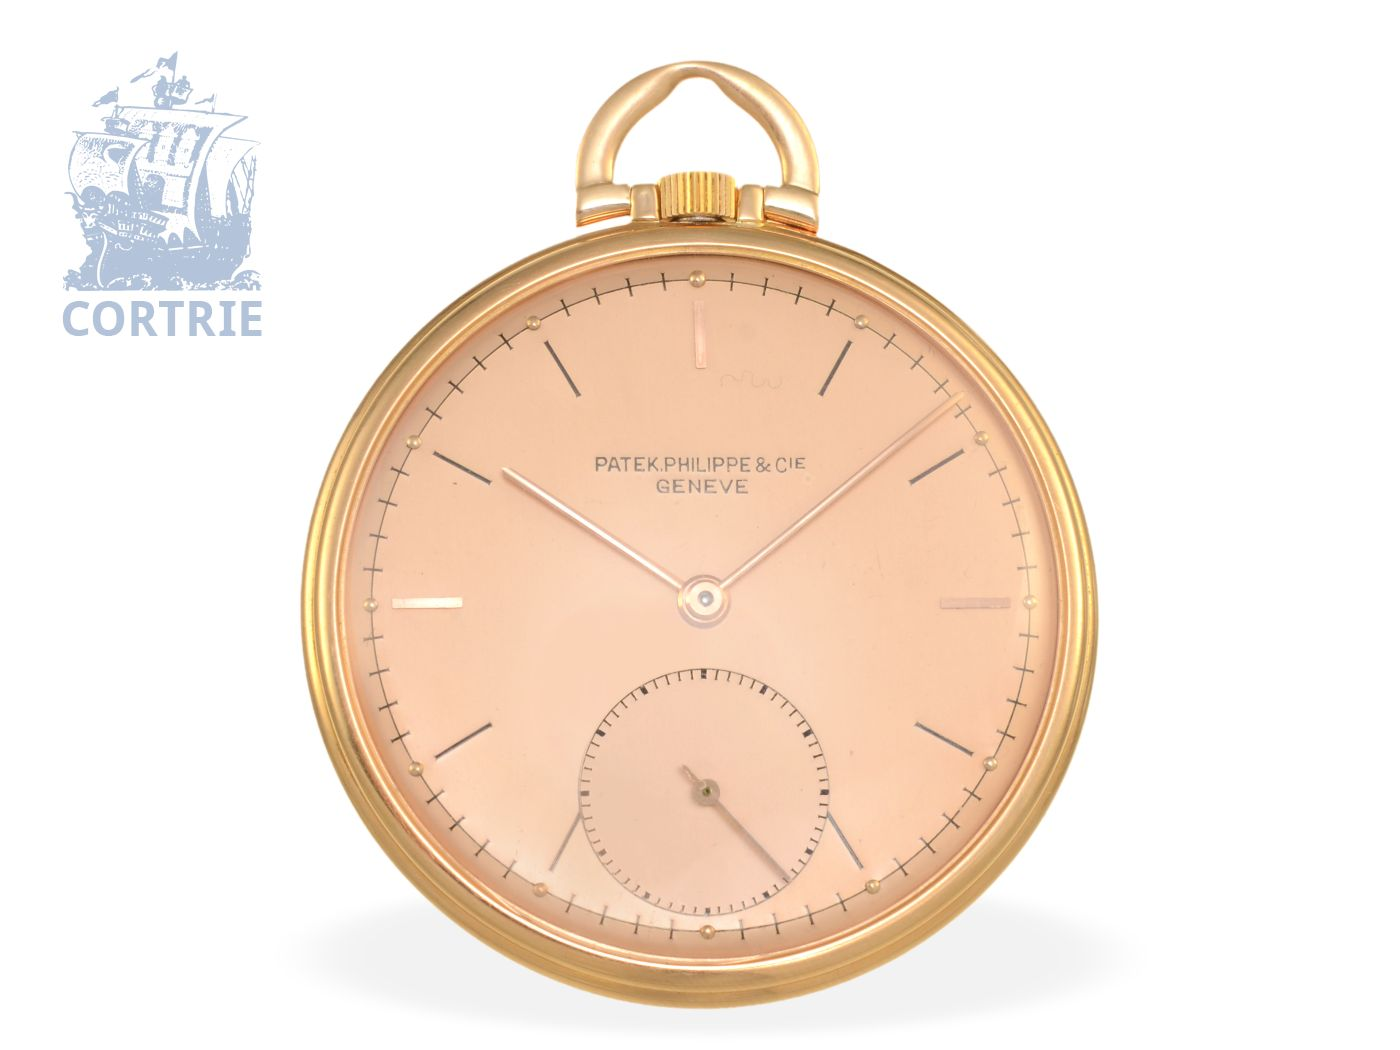 Pocket watch: very fine and elegant Patek Philippe dress watch with pink gold dial, Geneva from the 40s-